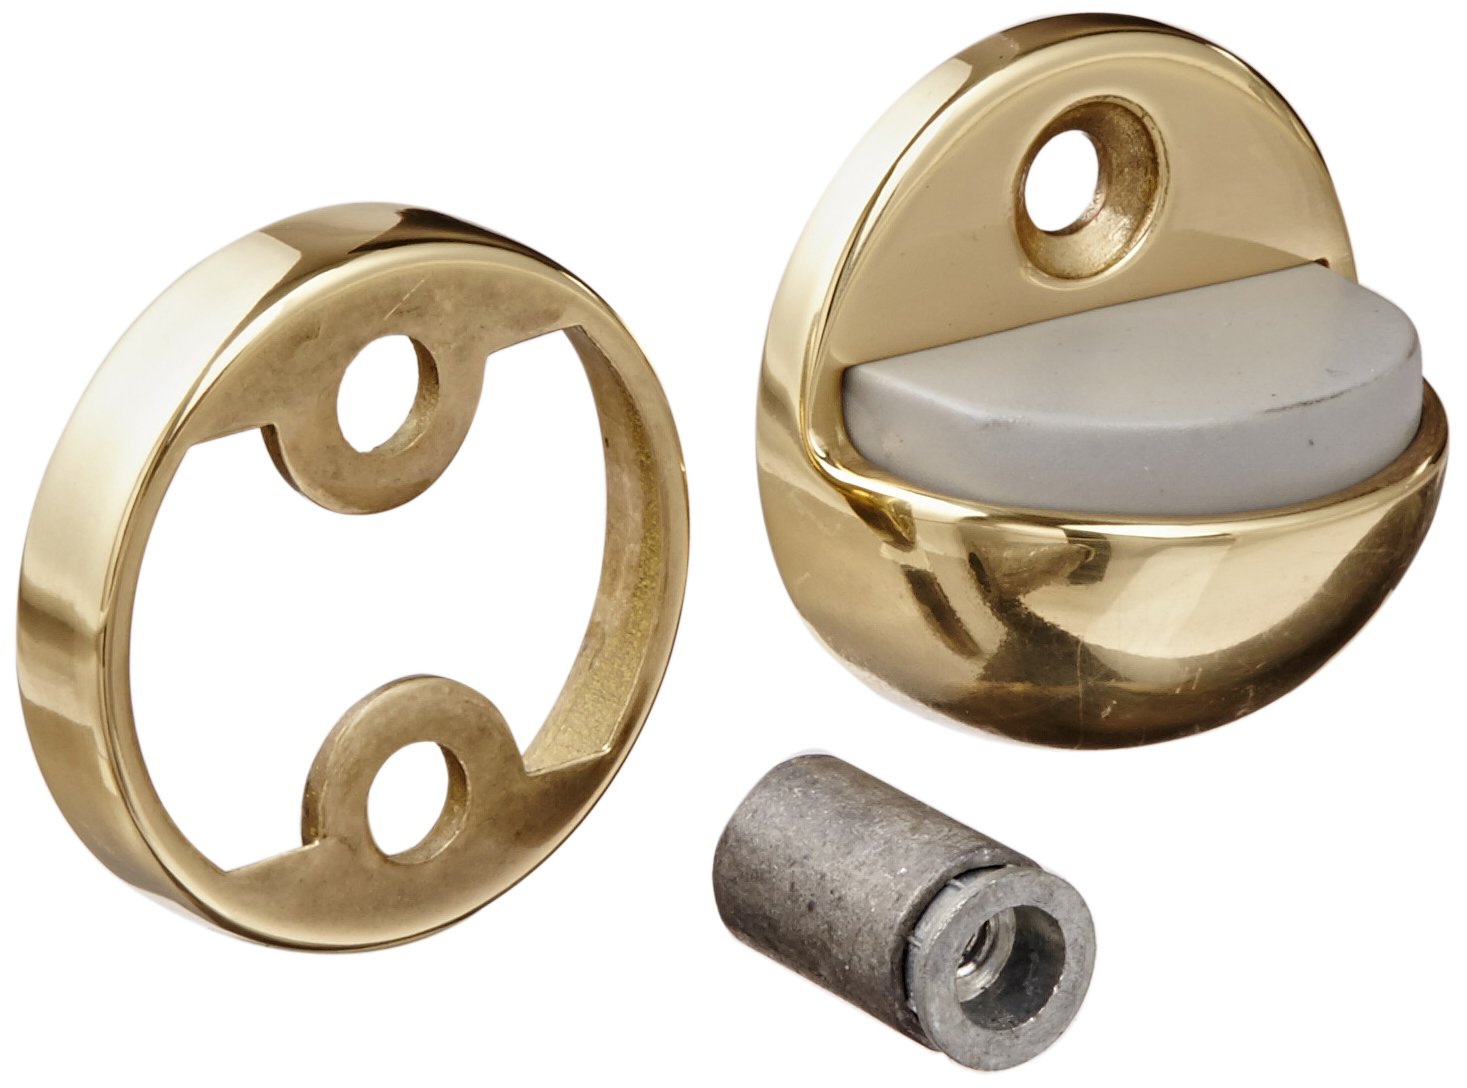 1-7//8 Base Diameter x 1-1//4 Base Length Polished Clear Coated Finish #12 X 1-1//2 FH WS Fastener with Plastic Anchor and 12-24 x 1-1//2 FH MS Fastener with Lead Anchor Rockwood 441CU.3 Brass Floor Mount Dome Stop Combination Unit